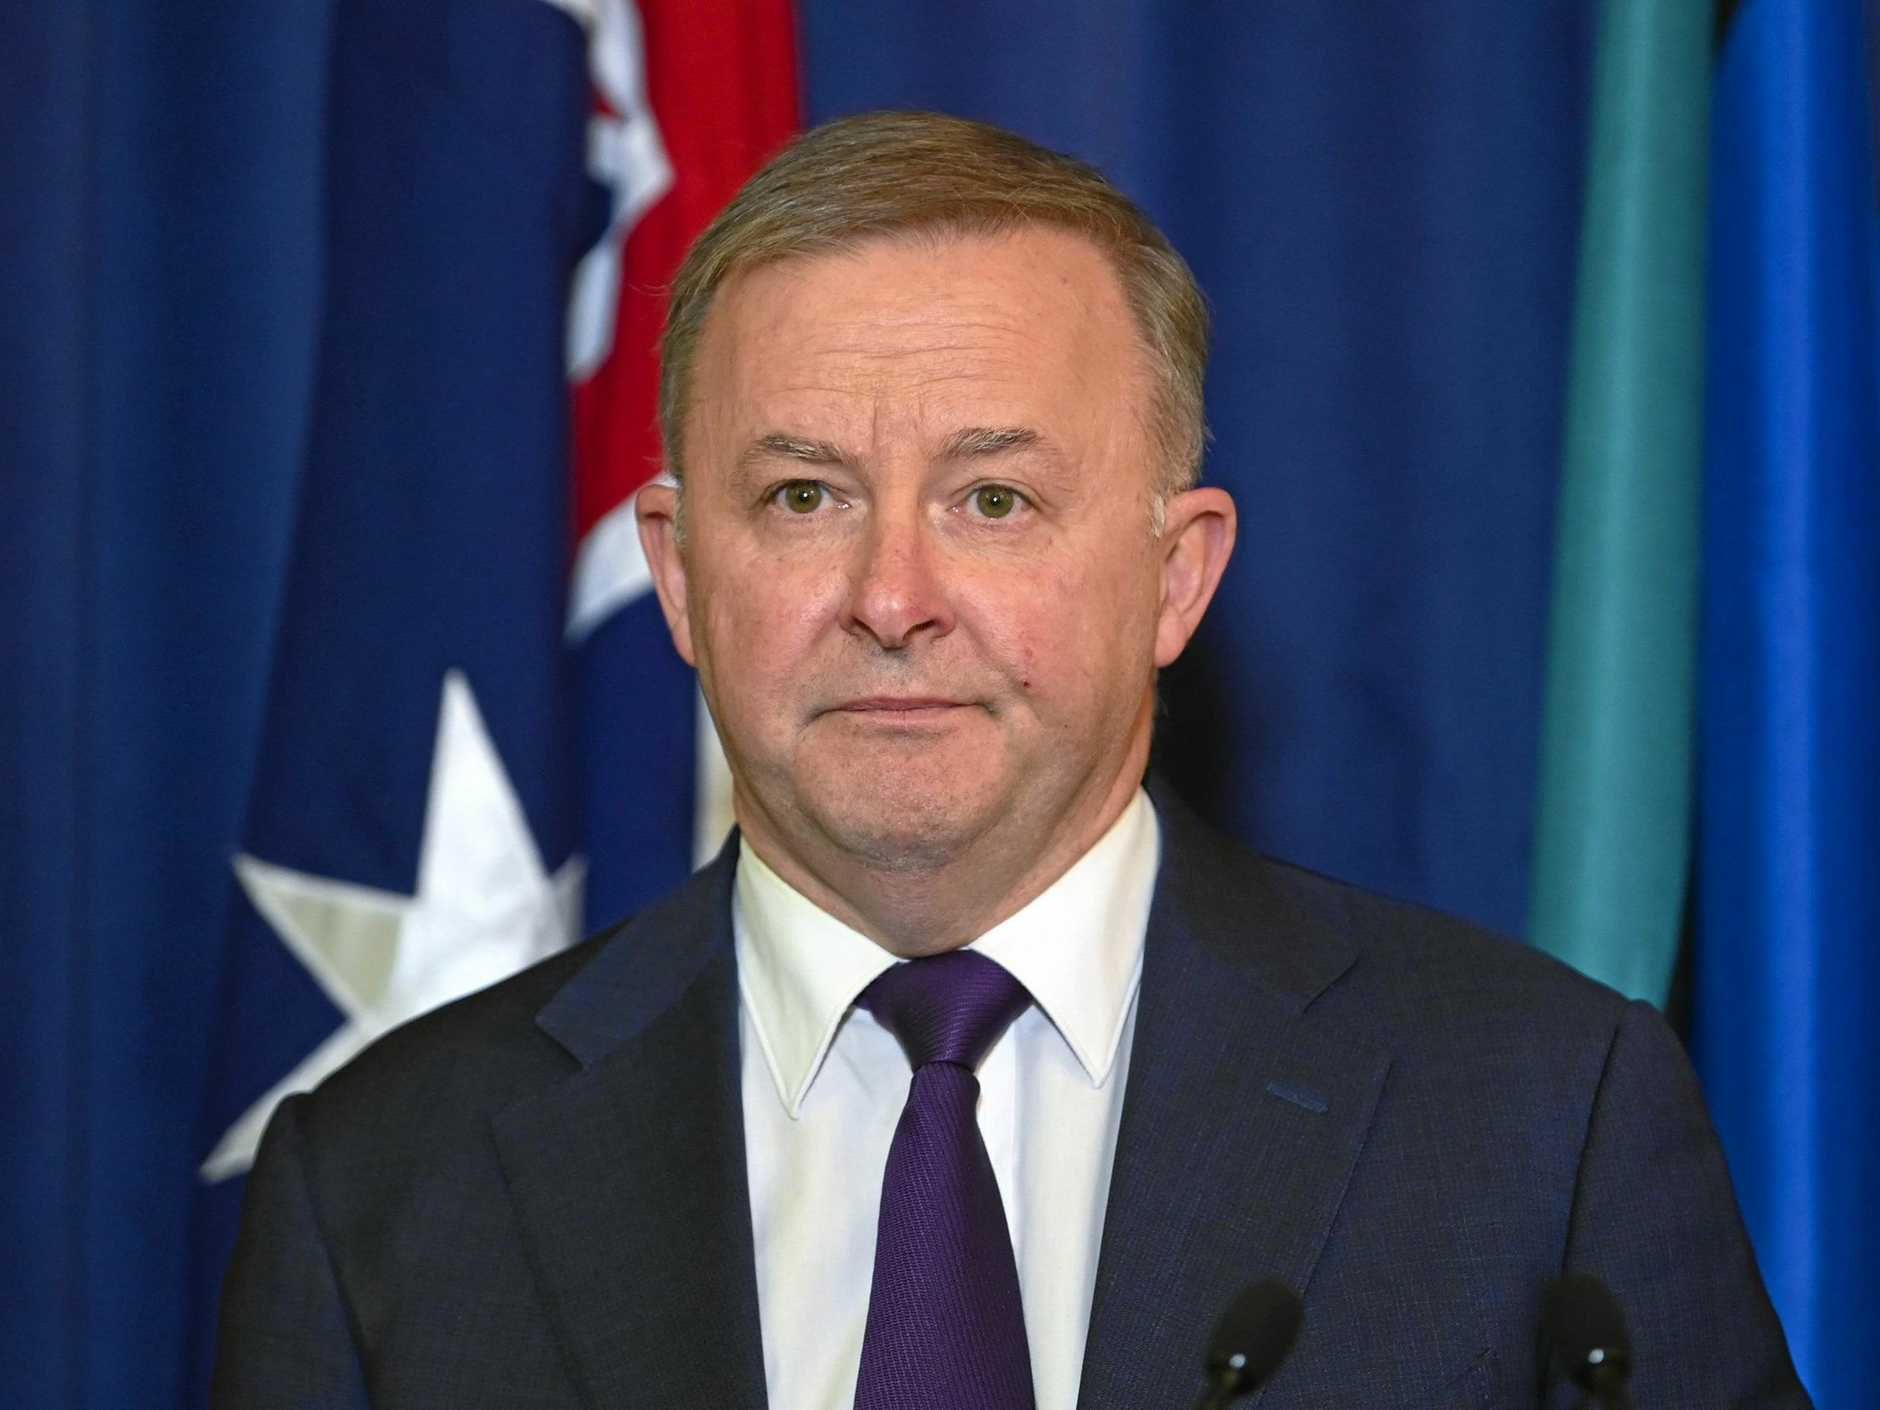 SAME AGAIN? Leader of the Opposition Anthony Albanese speaks to the media  at Parliament House in Canberra on Thursday.